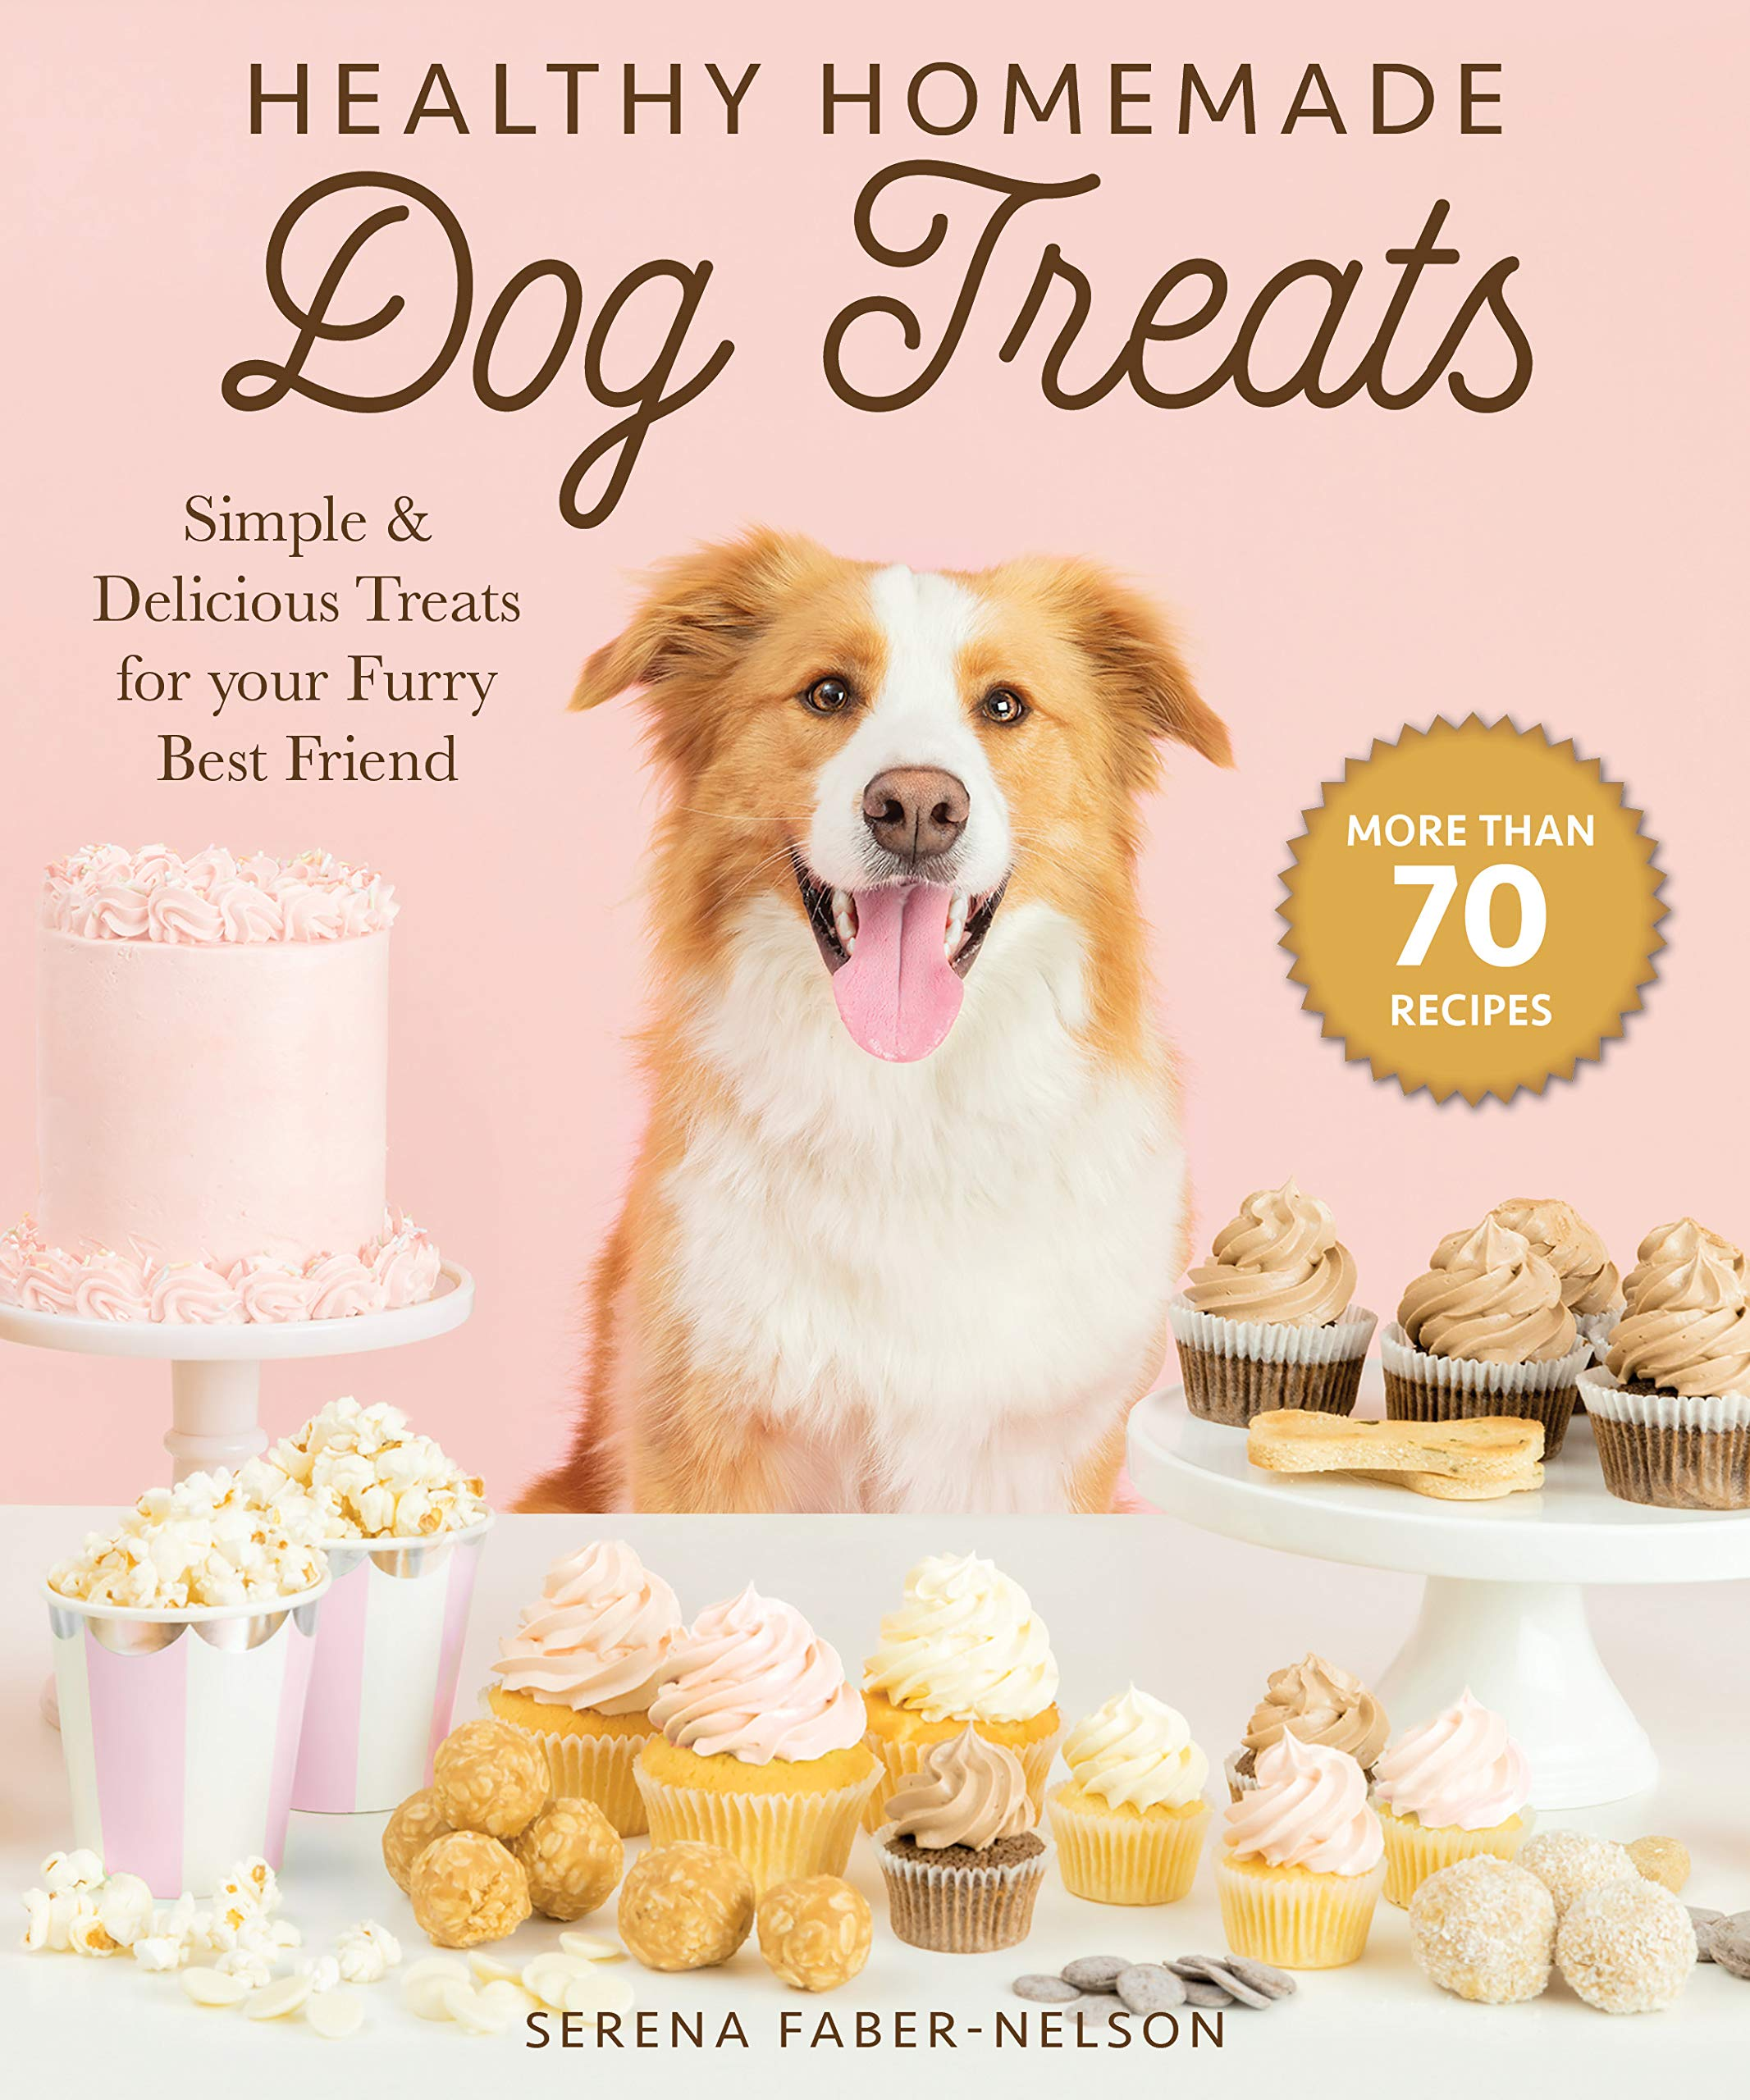 Healthy Homemade Dog Treats More Than 70 Simple Delicious Treats For Your Furry Best Friend Faber Nelson Serena 9781510744714 Amazon Com Books